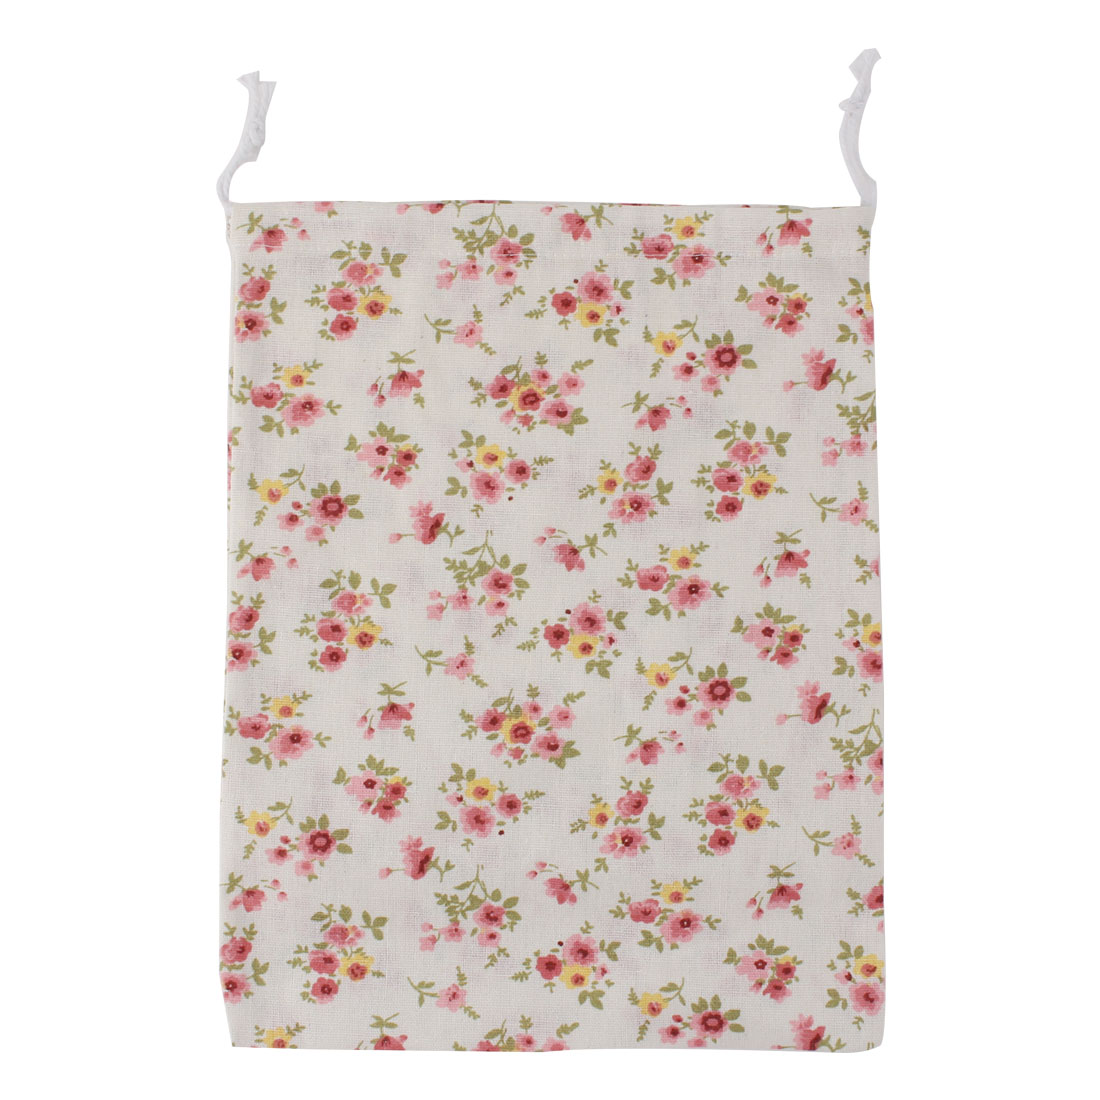 Household Travel Cotton Linen Flower Pattern Storage Packing Bag Drawstring Pouch Holder